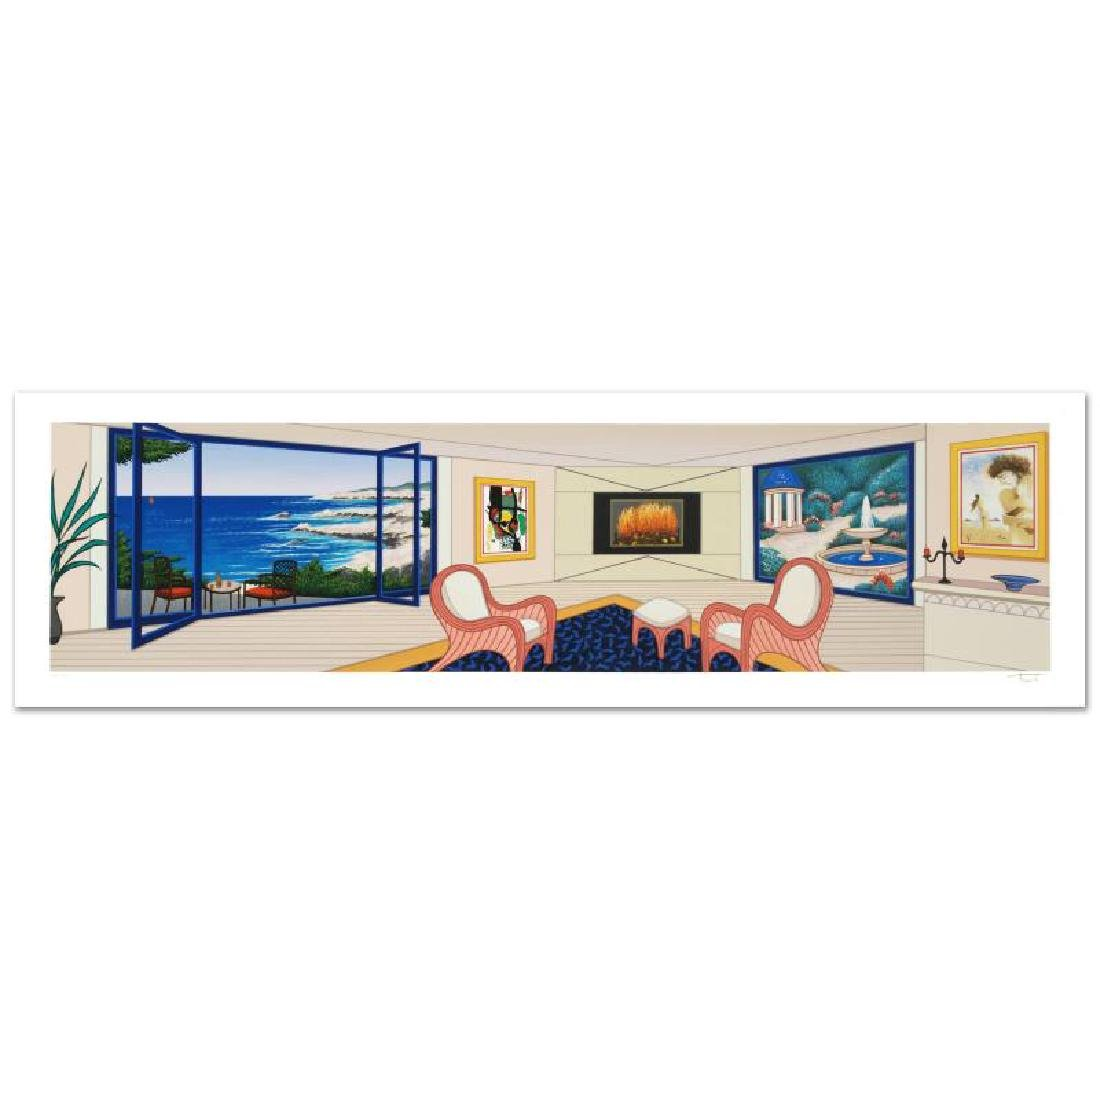 Villa In Big Sur Limited Edition Serigraph By Fanch